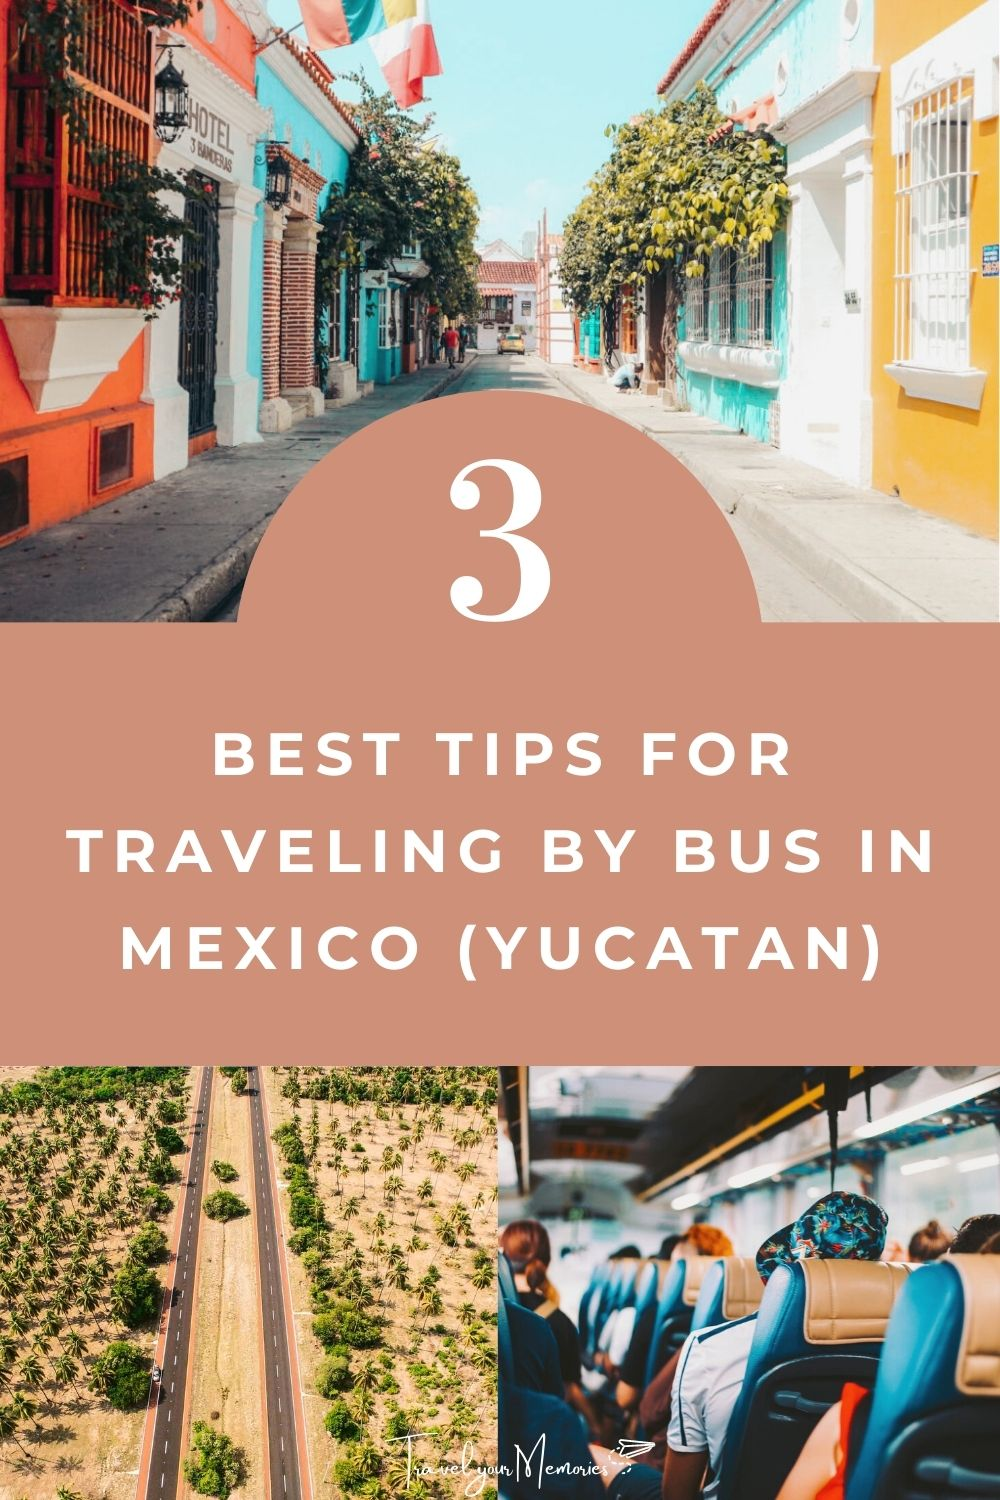 Best 3 tips for travel by bus in Mexico